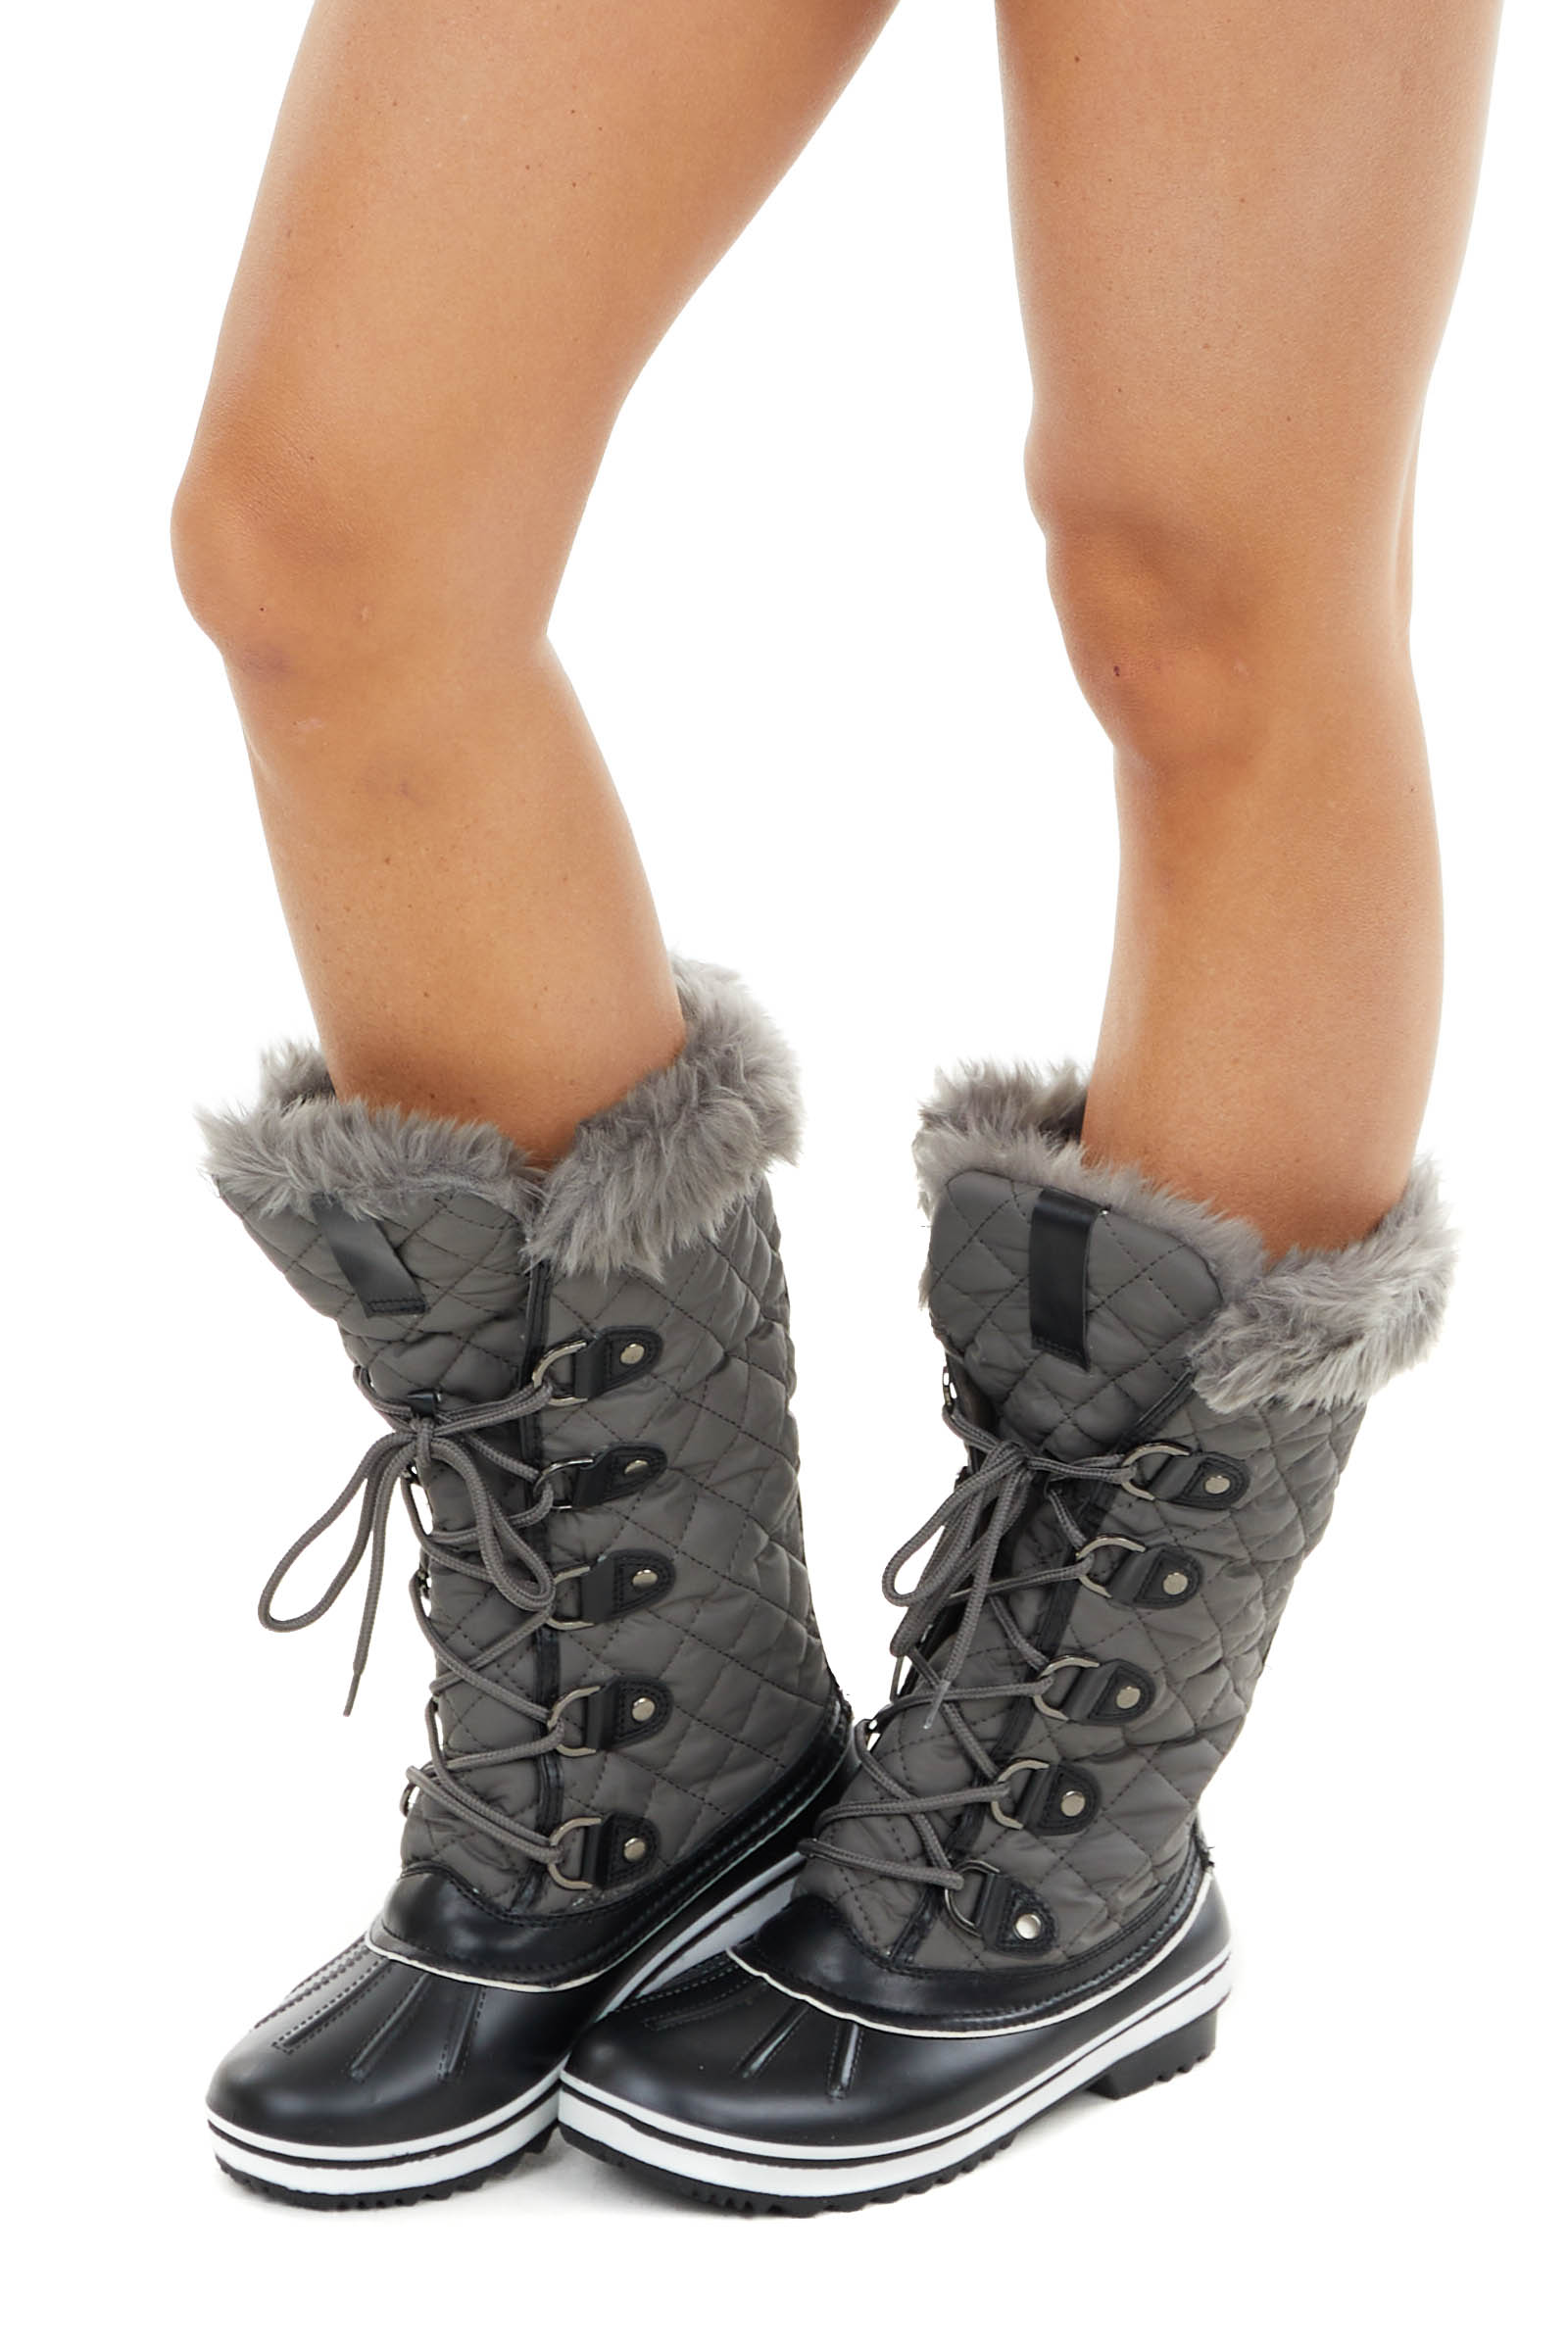 Ash Grey Quilted Lace Up Snow Boots with Faux Fur Lining